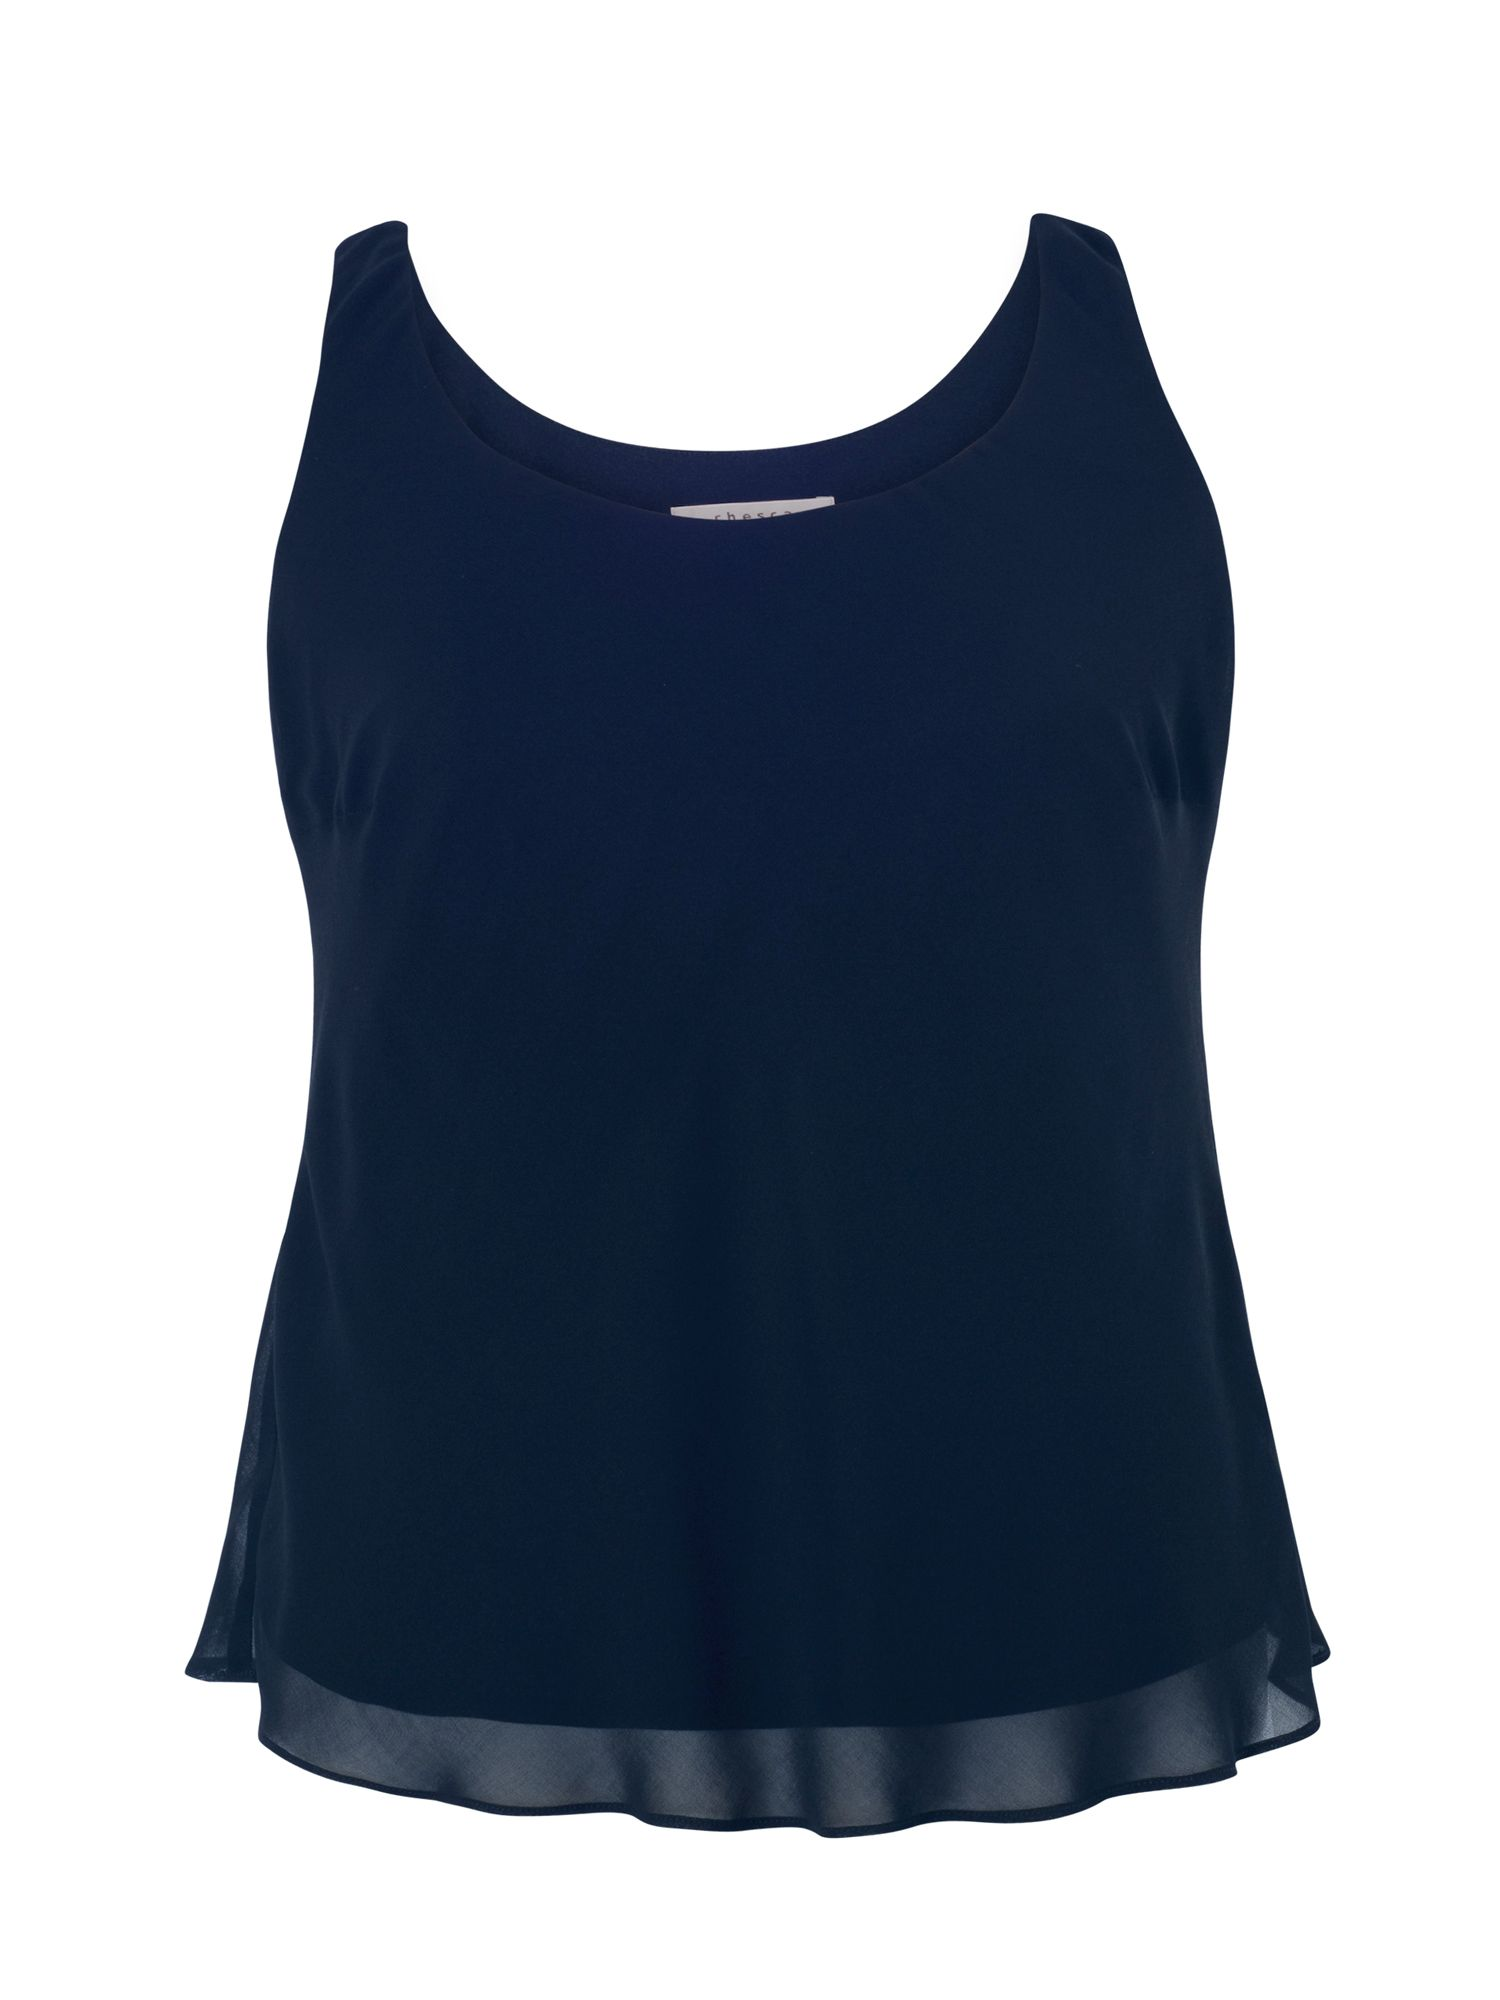 Chesca Chiffon Camisole with Jersey Lining, Blue